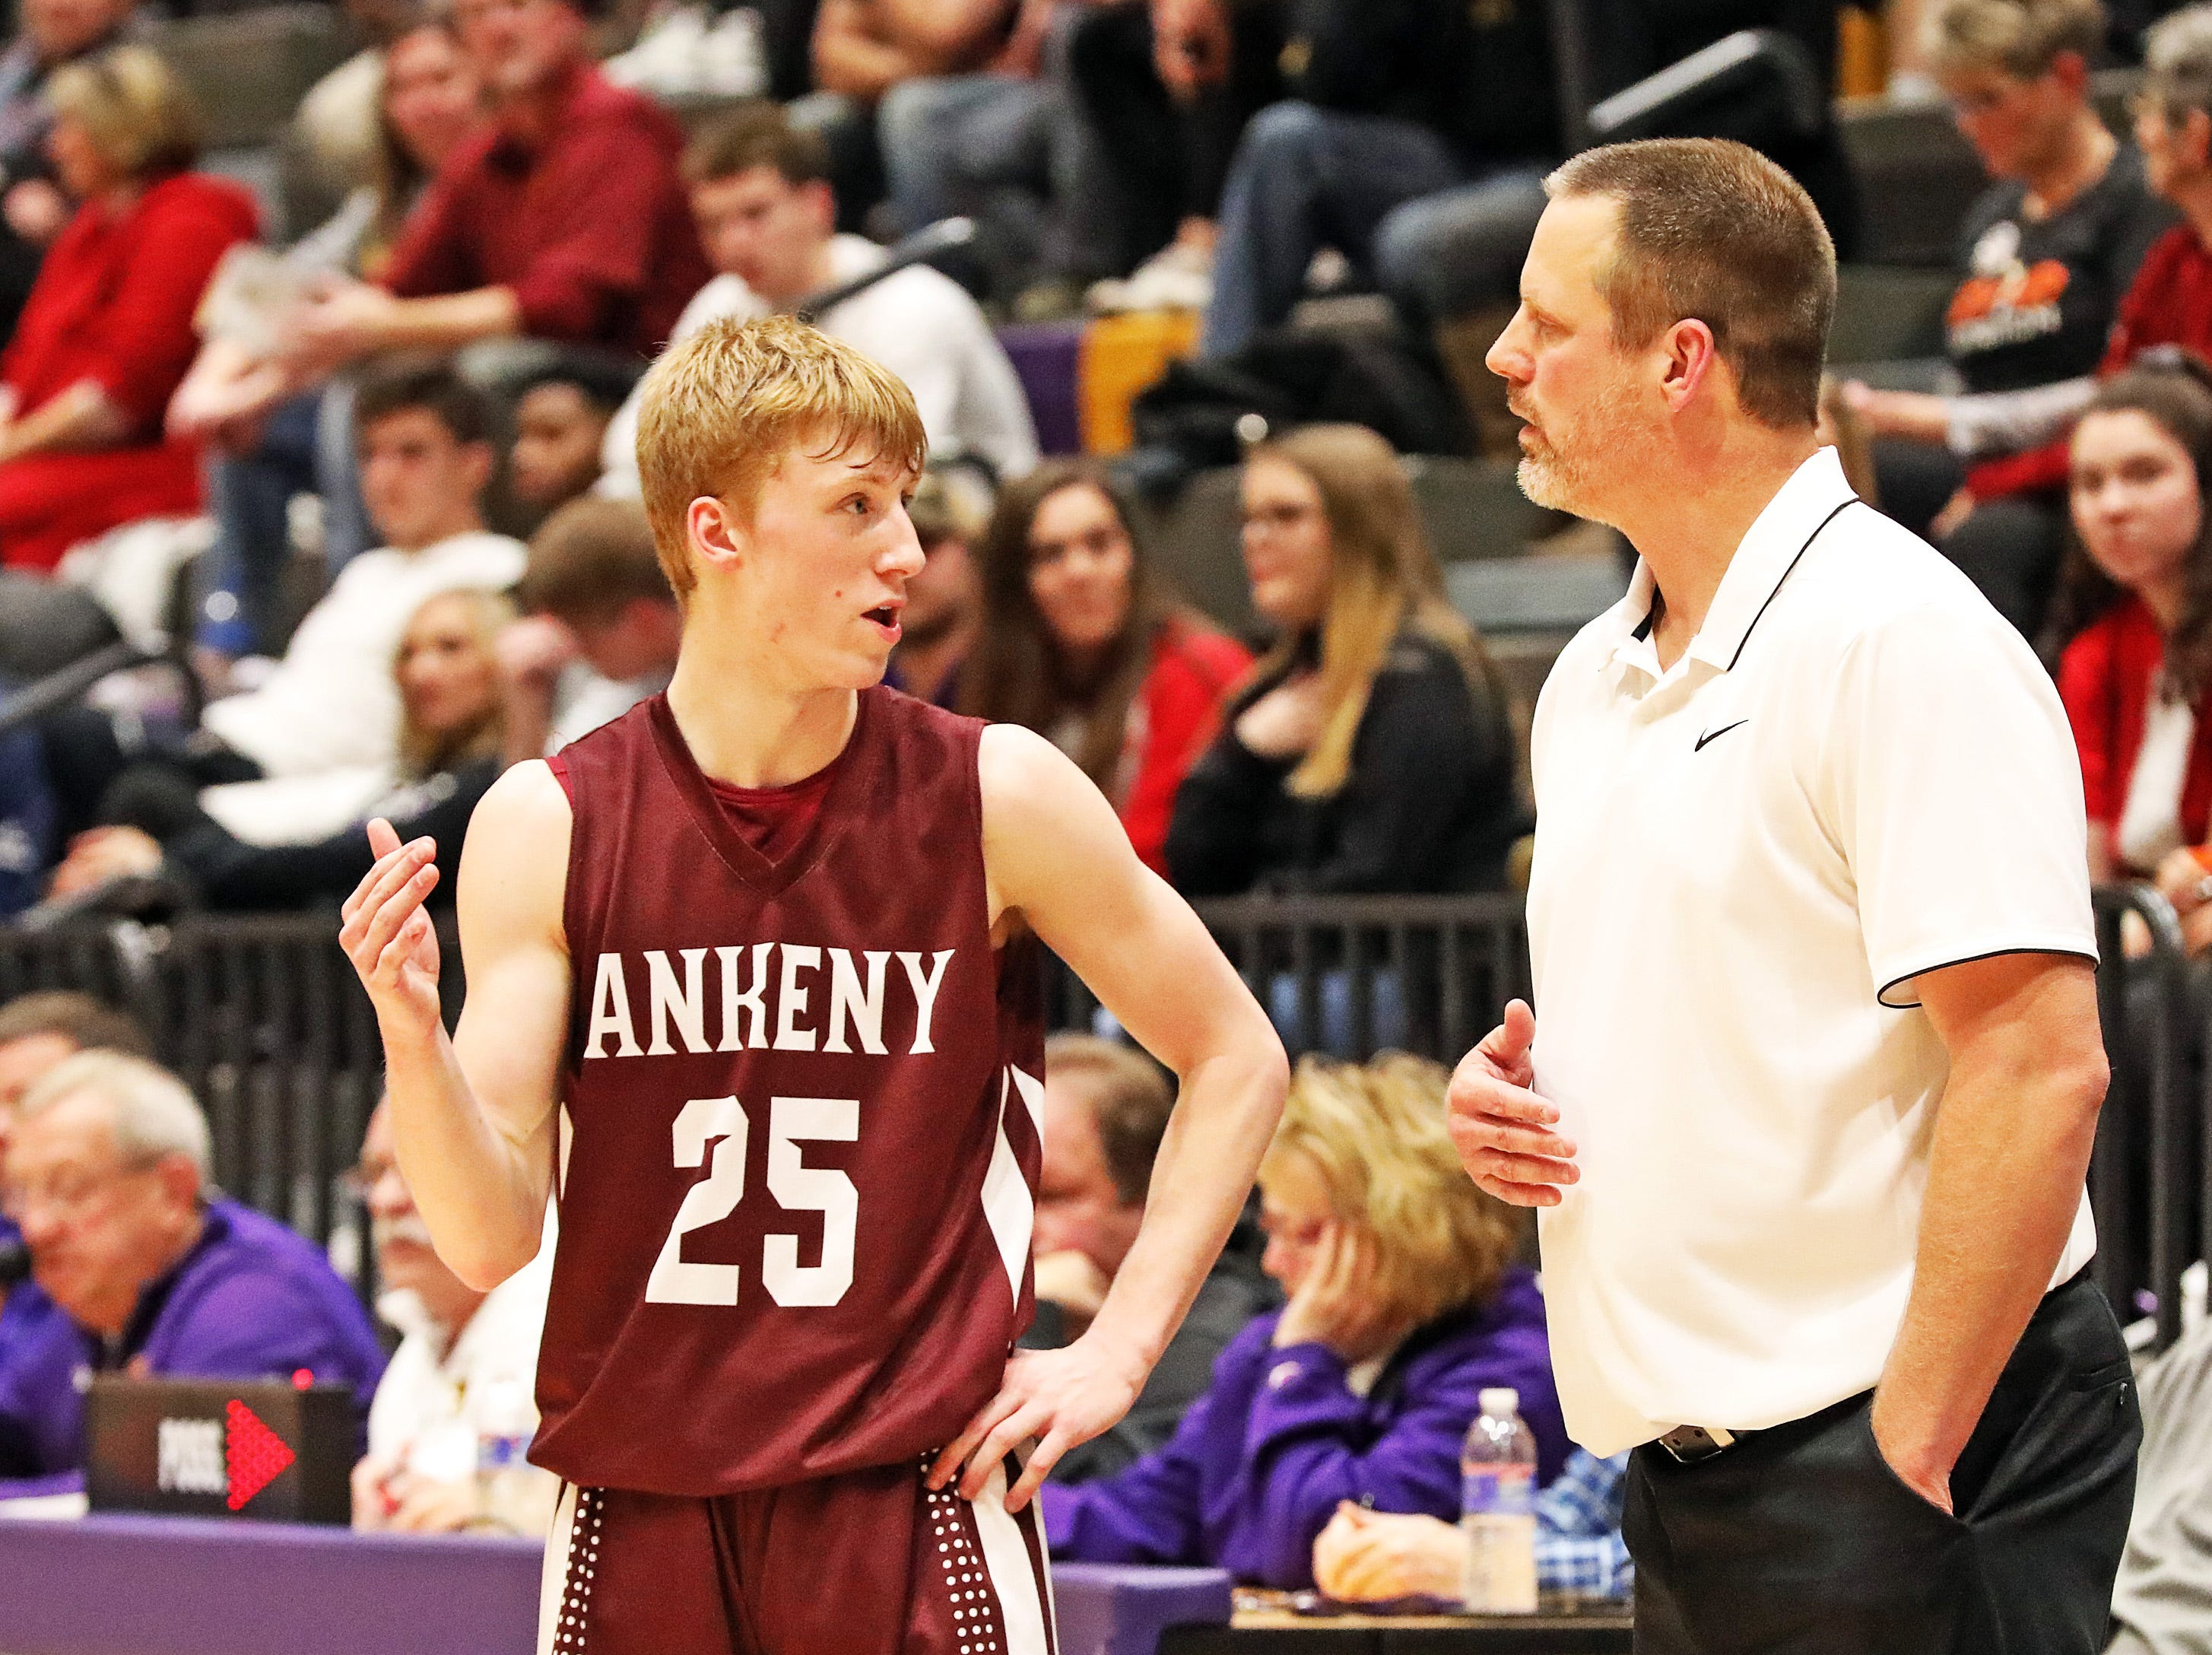 Ankeny senior Dillon Carlson plans the next play with his Dad and head coach Brandt Carlson as the Ankeny Hawks compete against the Johnston Dragons in high school basketball on Friday, Dec. 21, 2018 at Johnston High School.